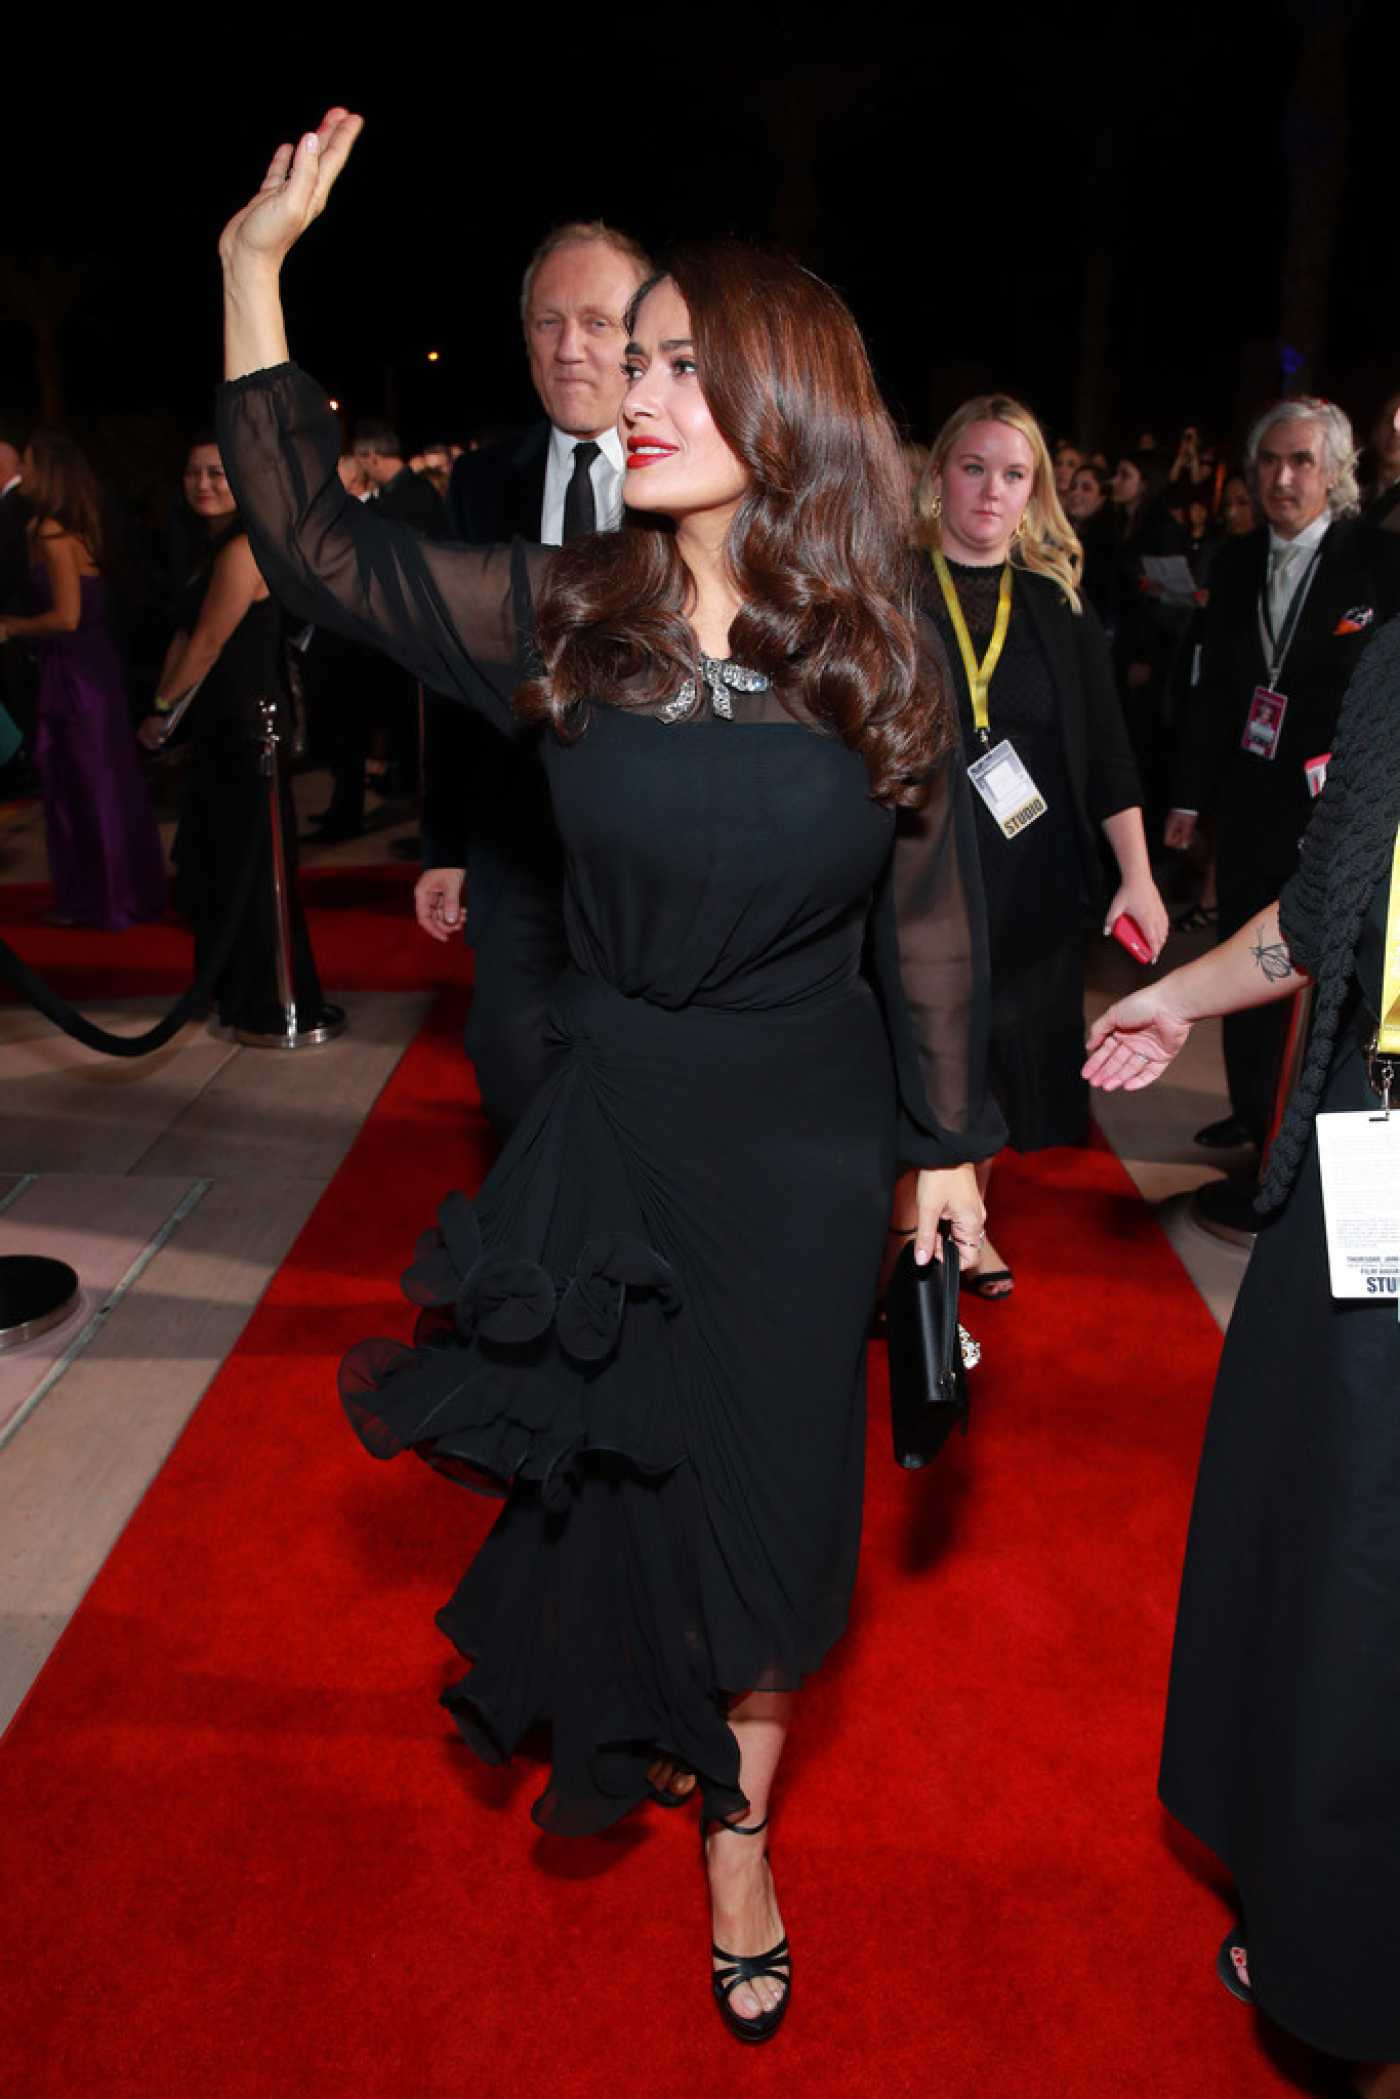 Salma Hayek Attends the 31st Annual Palm Springs International Film Festival in Palm Springs CA 01/02/2020